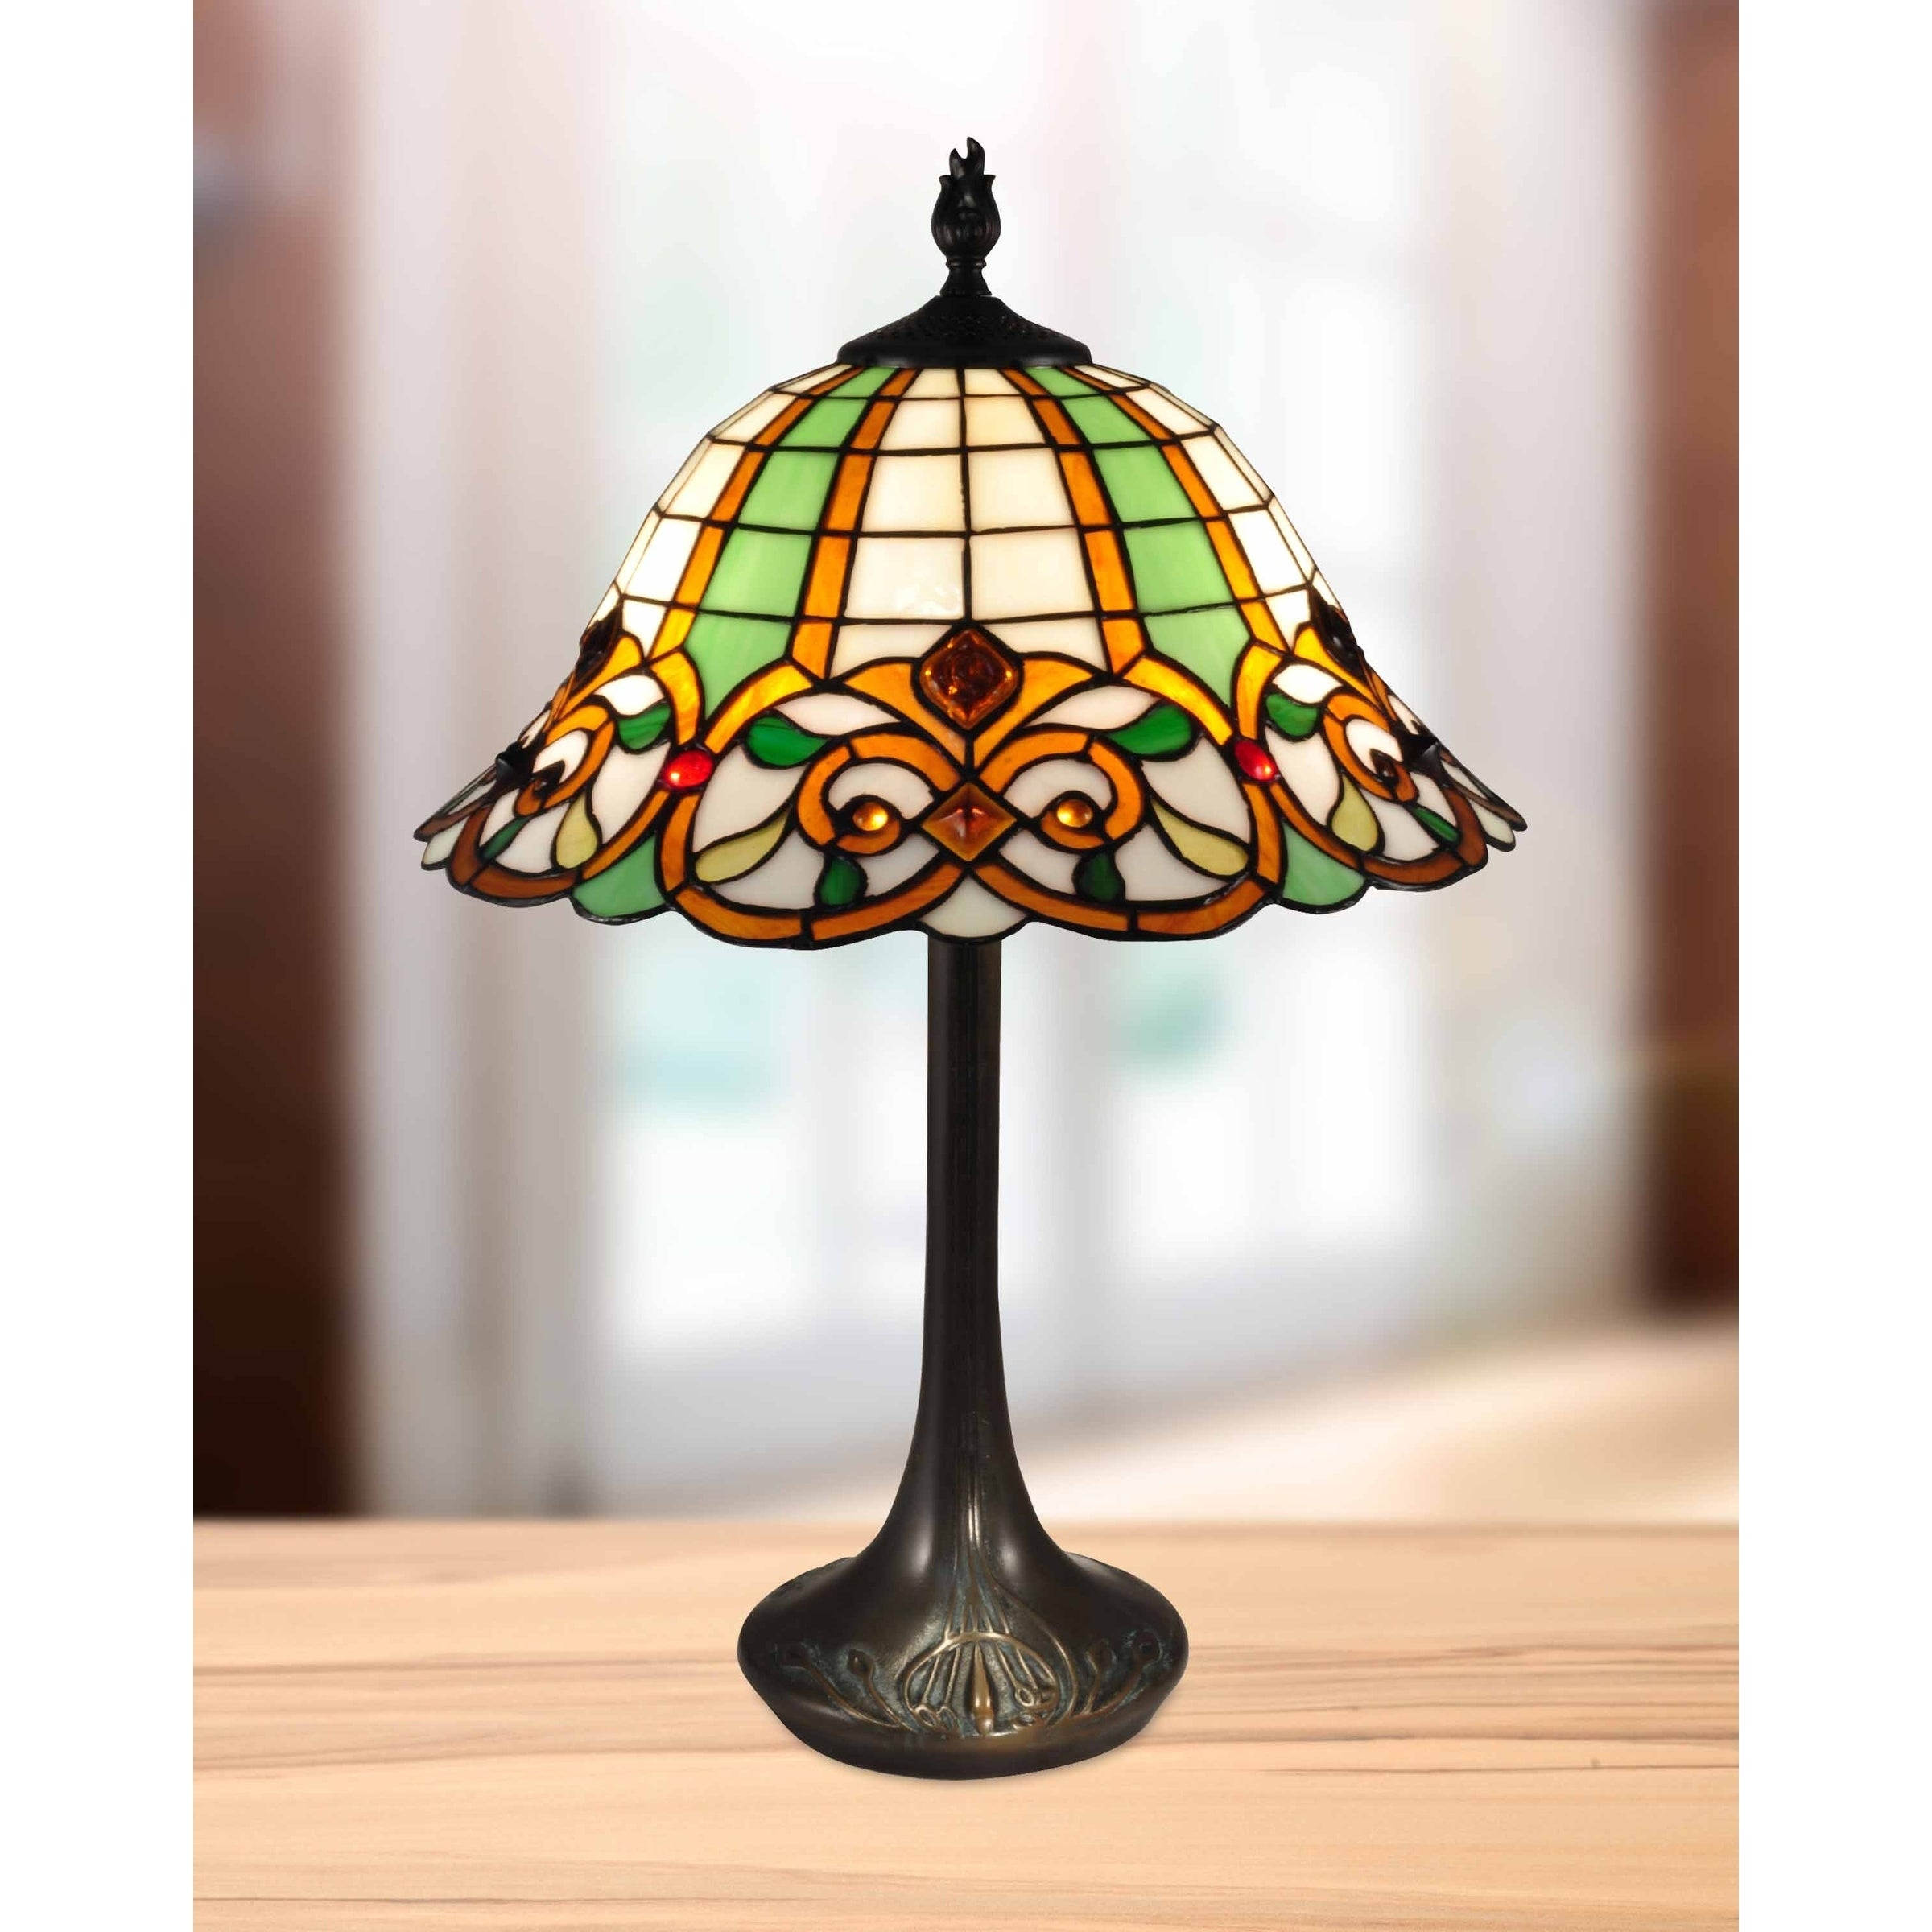 Vibrant Color Double Lit 24.5 H Green Table Lamp Stained